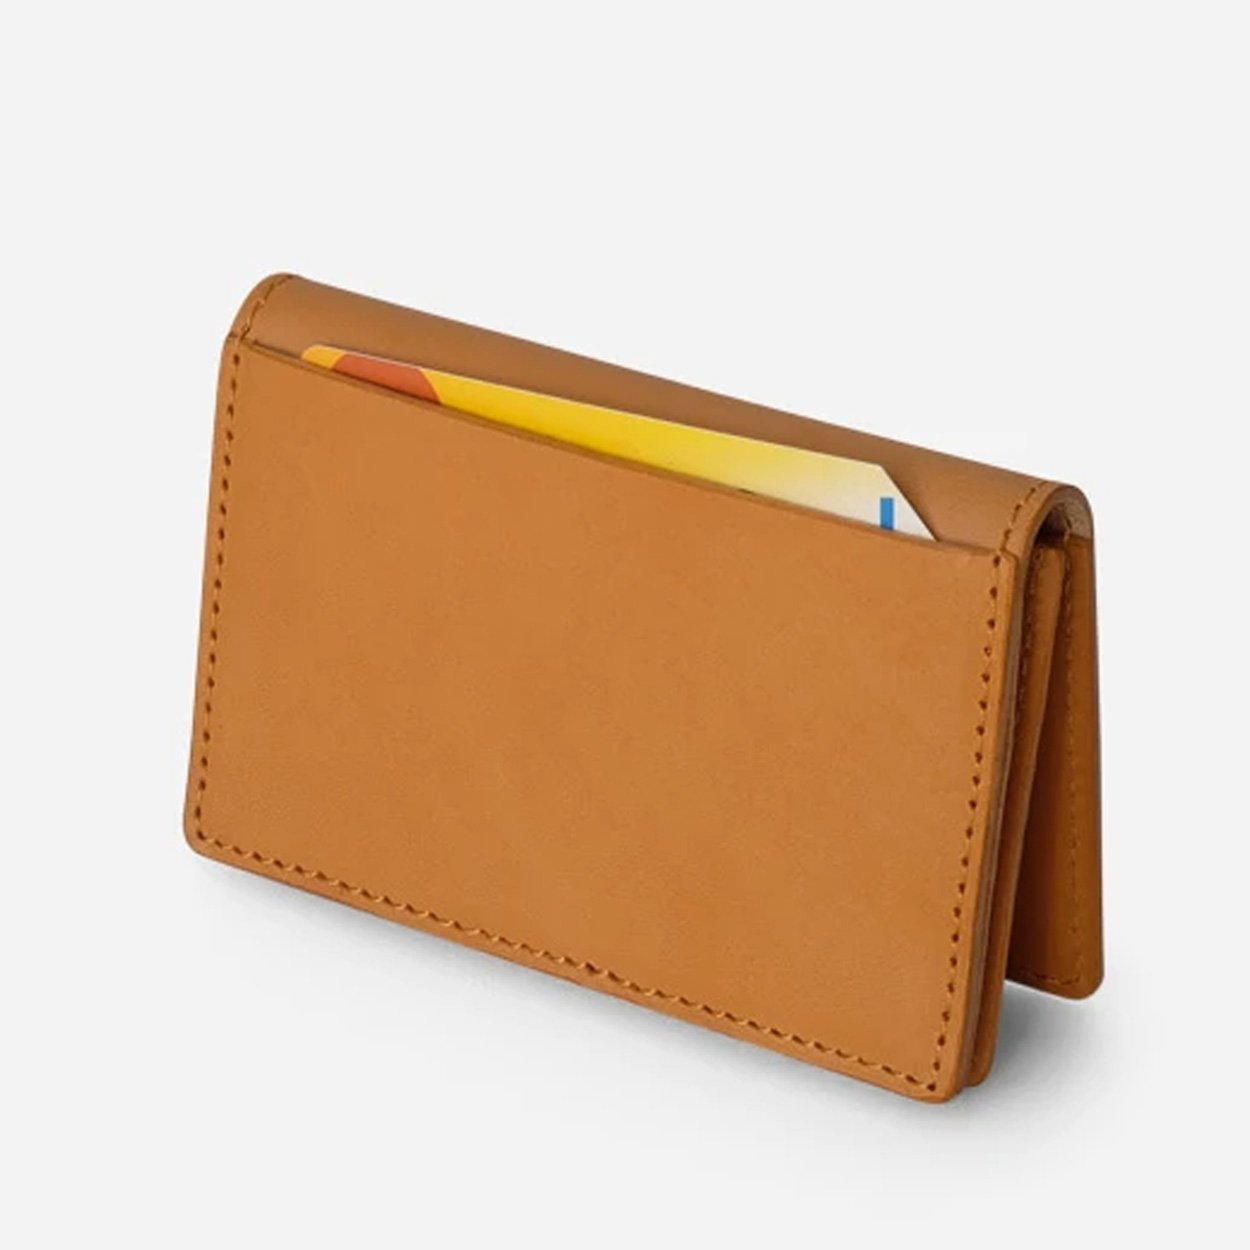 The Oyster Foldover Leather Wallet - Saddle